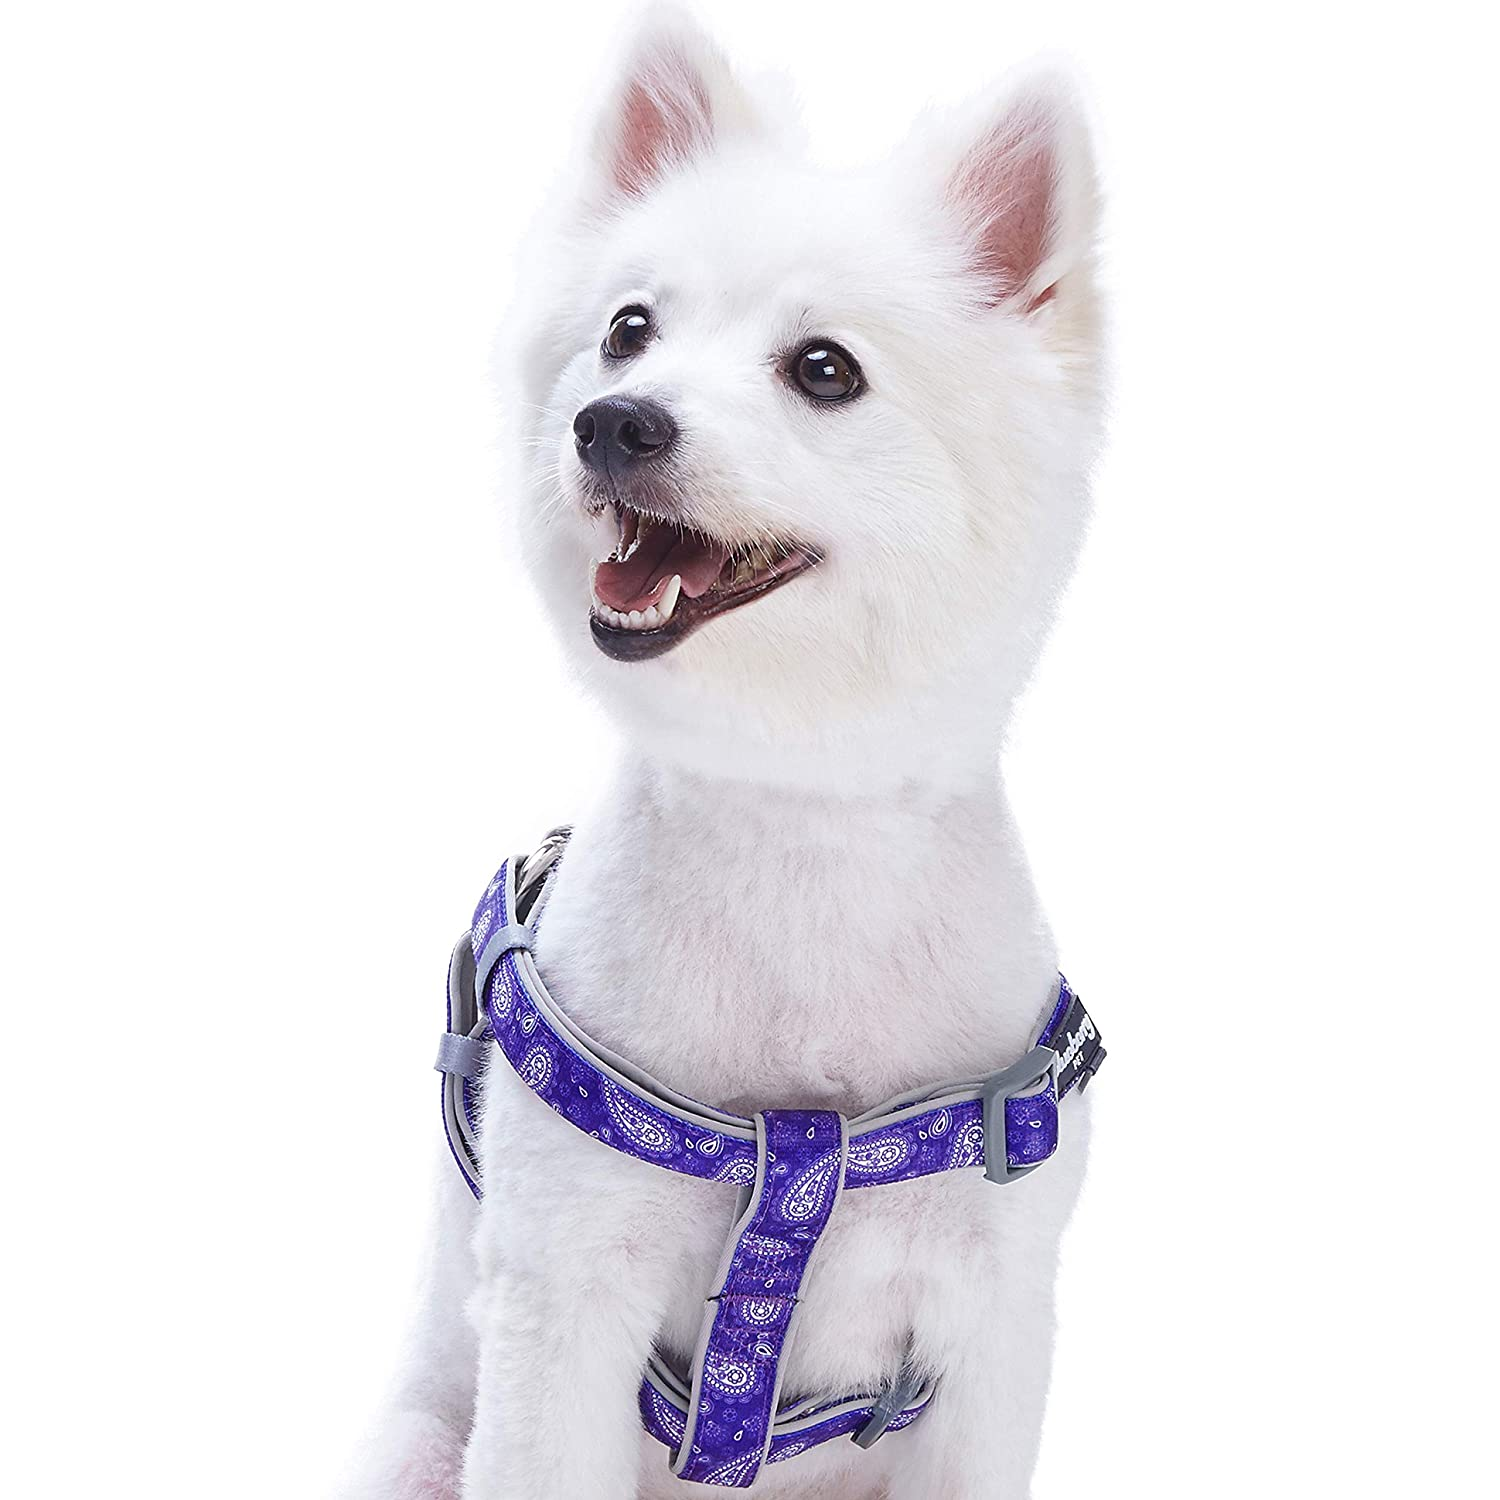 purple (16.5\ purple (16.5\ blueeberry Pet 5 colors Soft & Comfy Step-in Paisley Flower Print Dog Harness, Chest Girth 16.5  21.5 , purple, Small, Adjustable Harnesses for Dogs